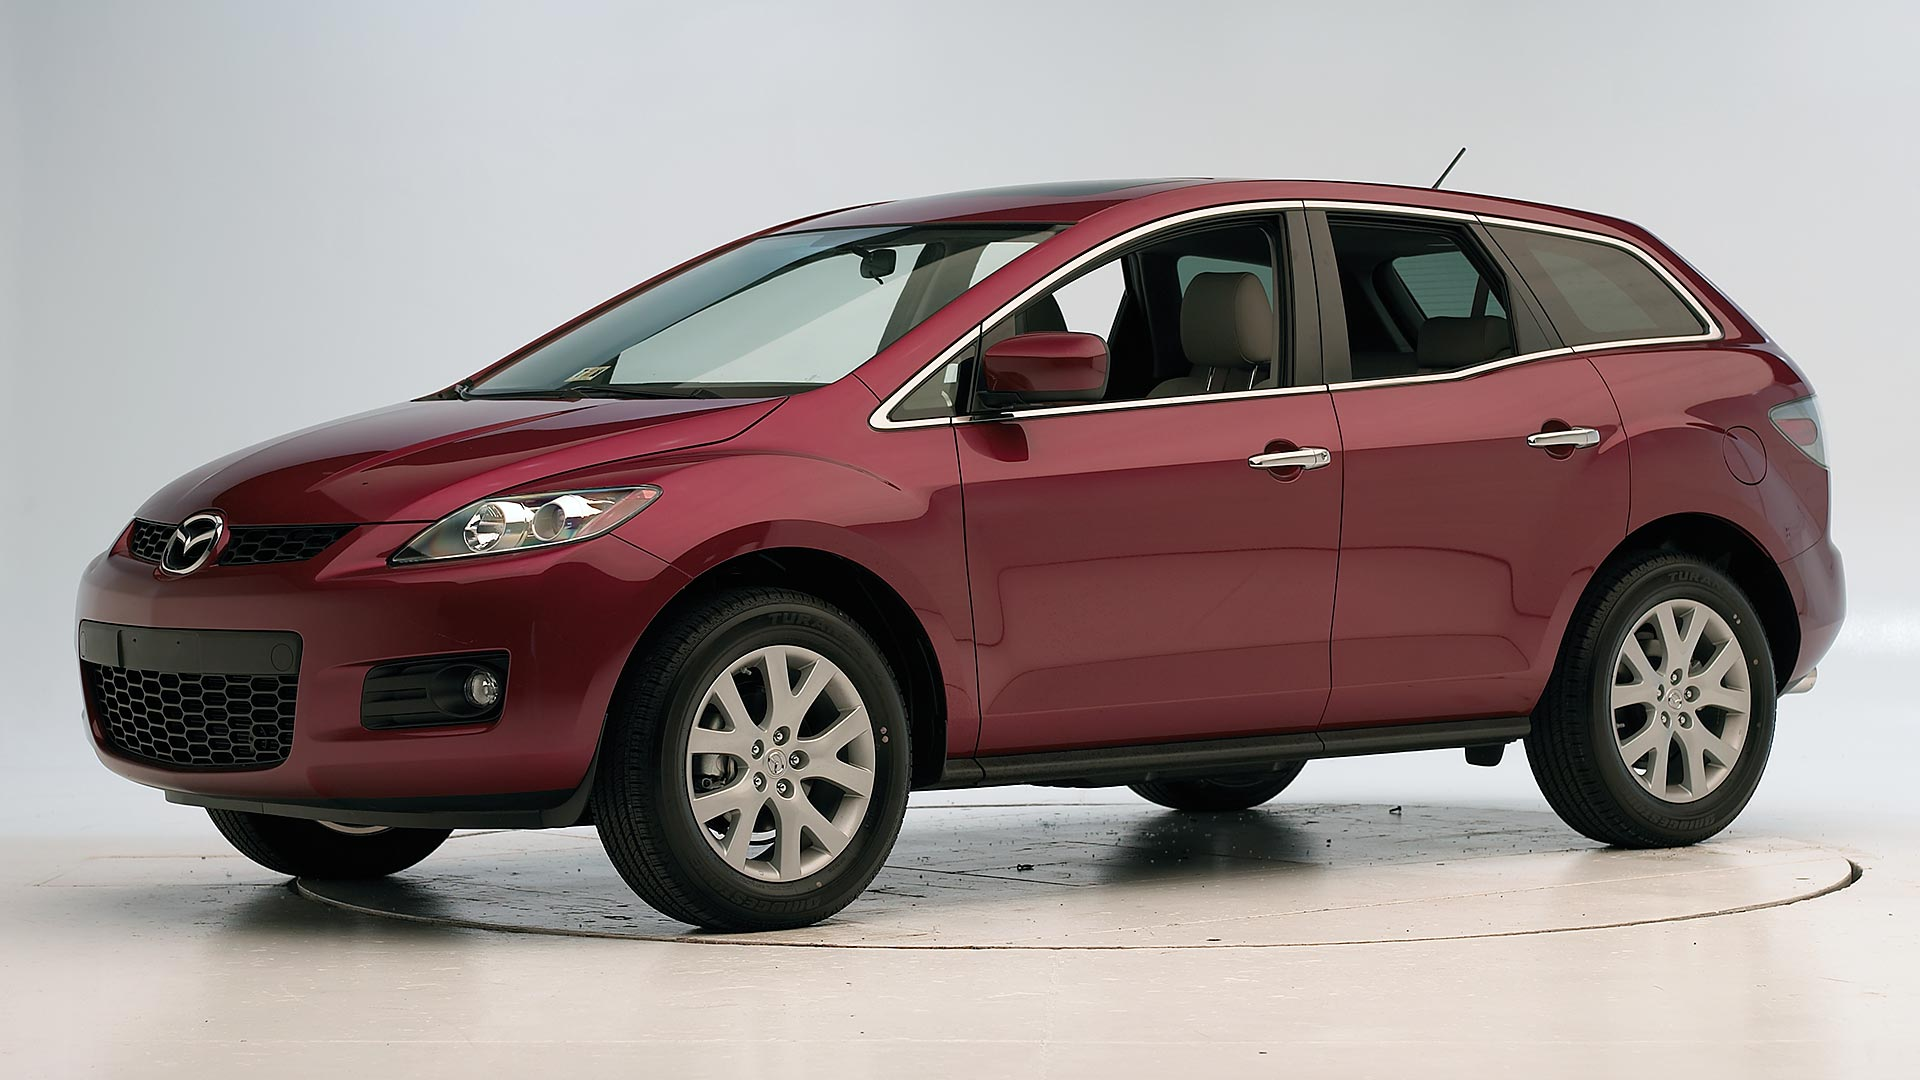 2009 Mazda CX-7 4-door SUV